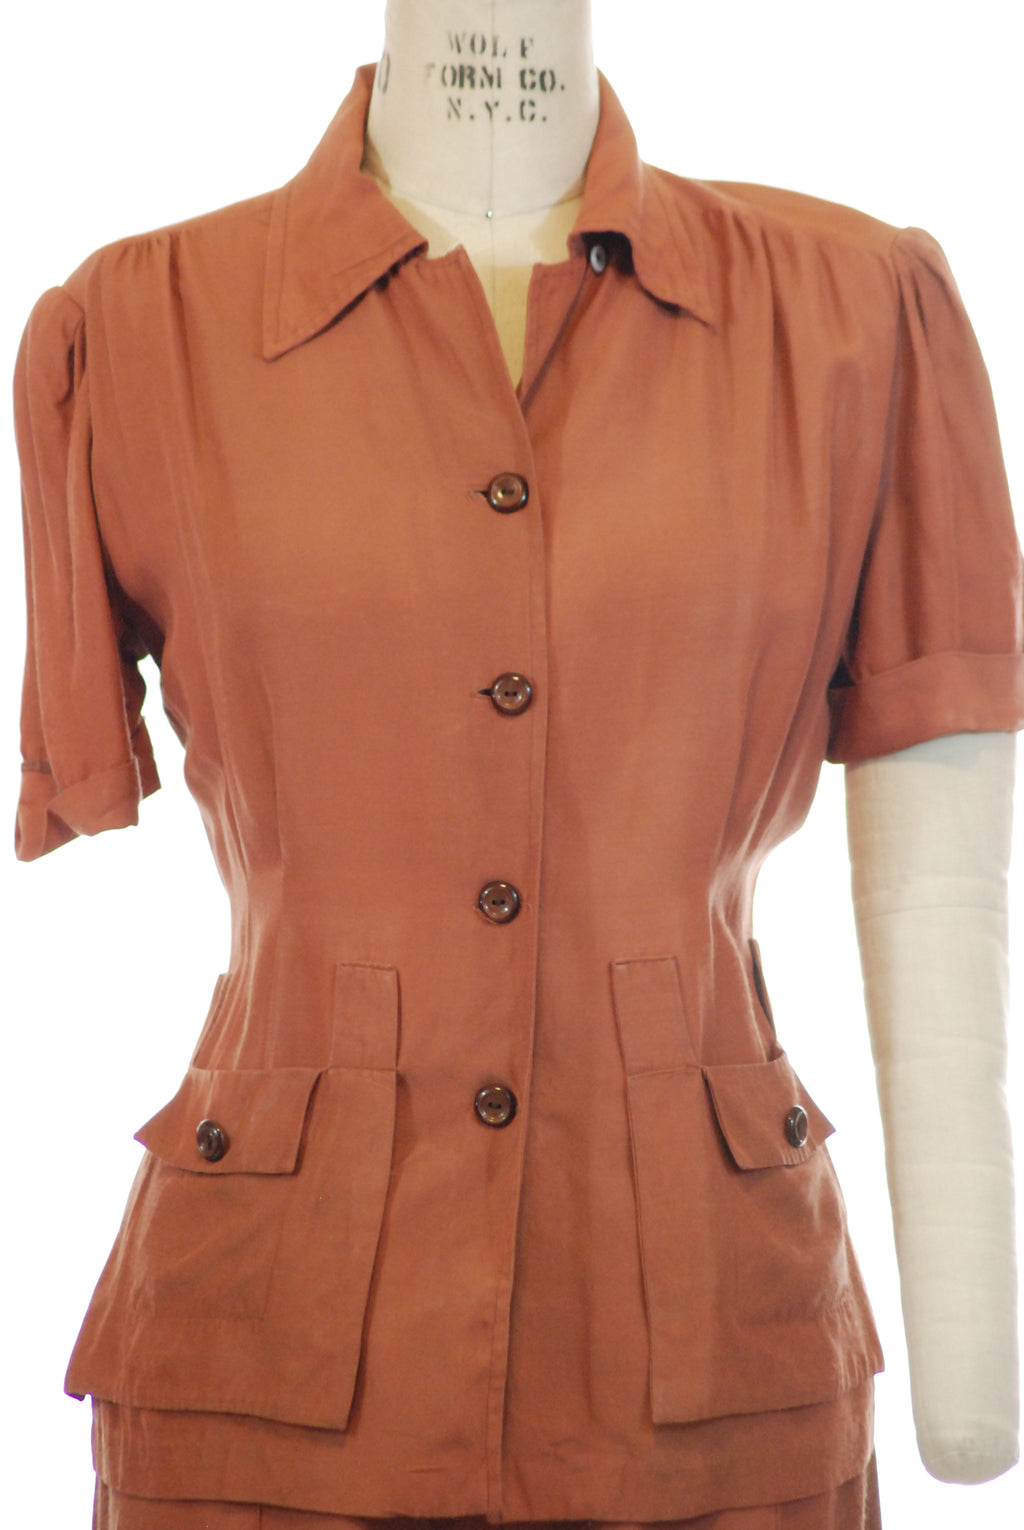 Classic 1940s Sportswear Pantsuit in Pinkish Clay Brown Hollywood Creations by Polly Pierce